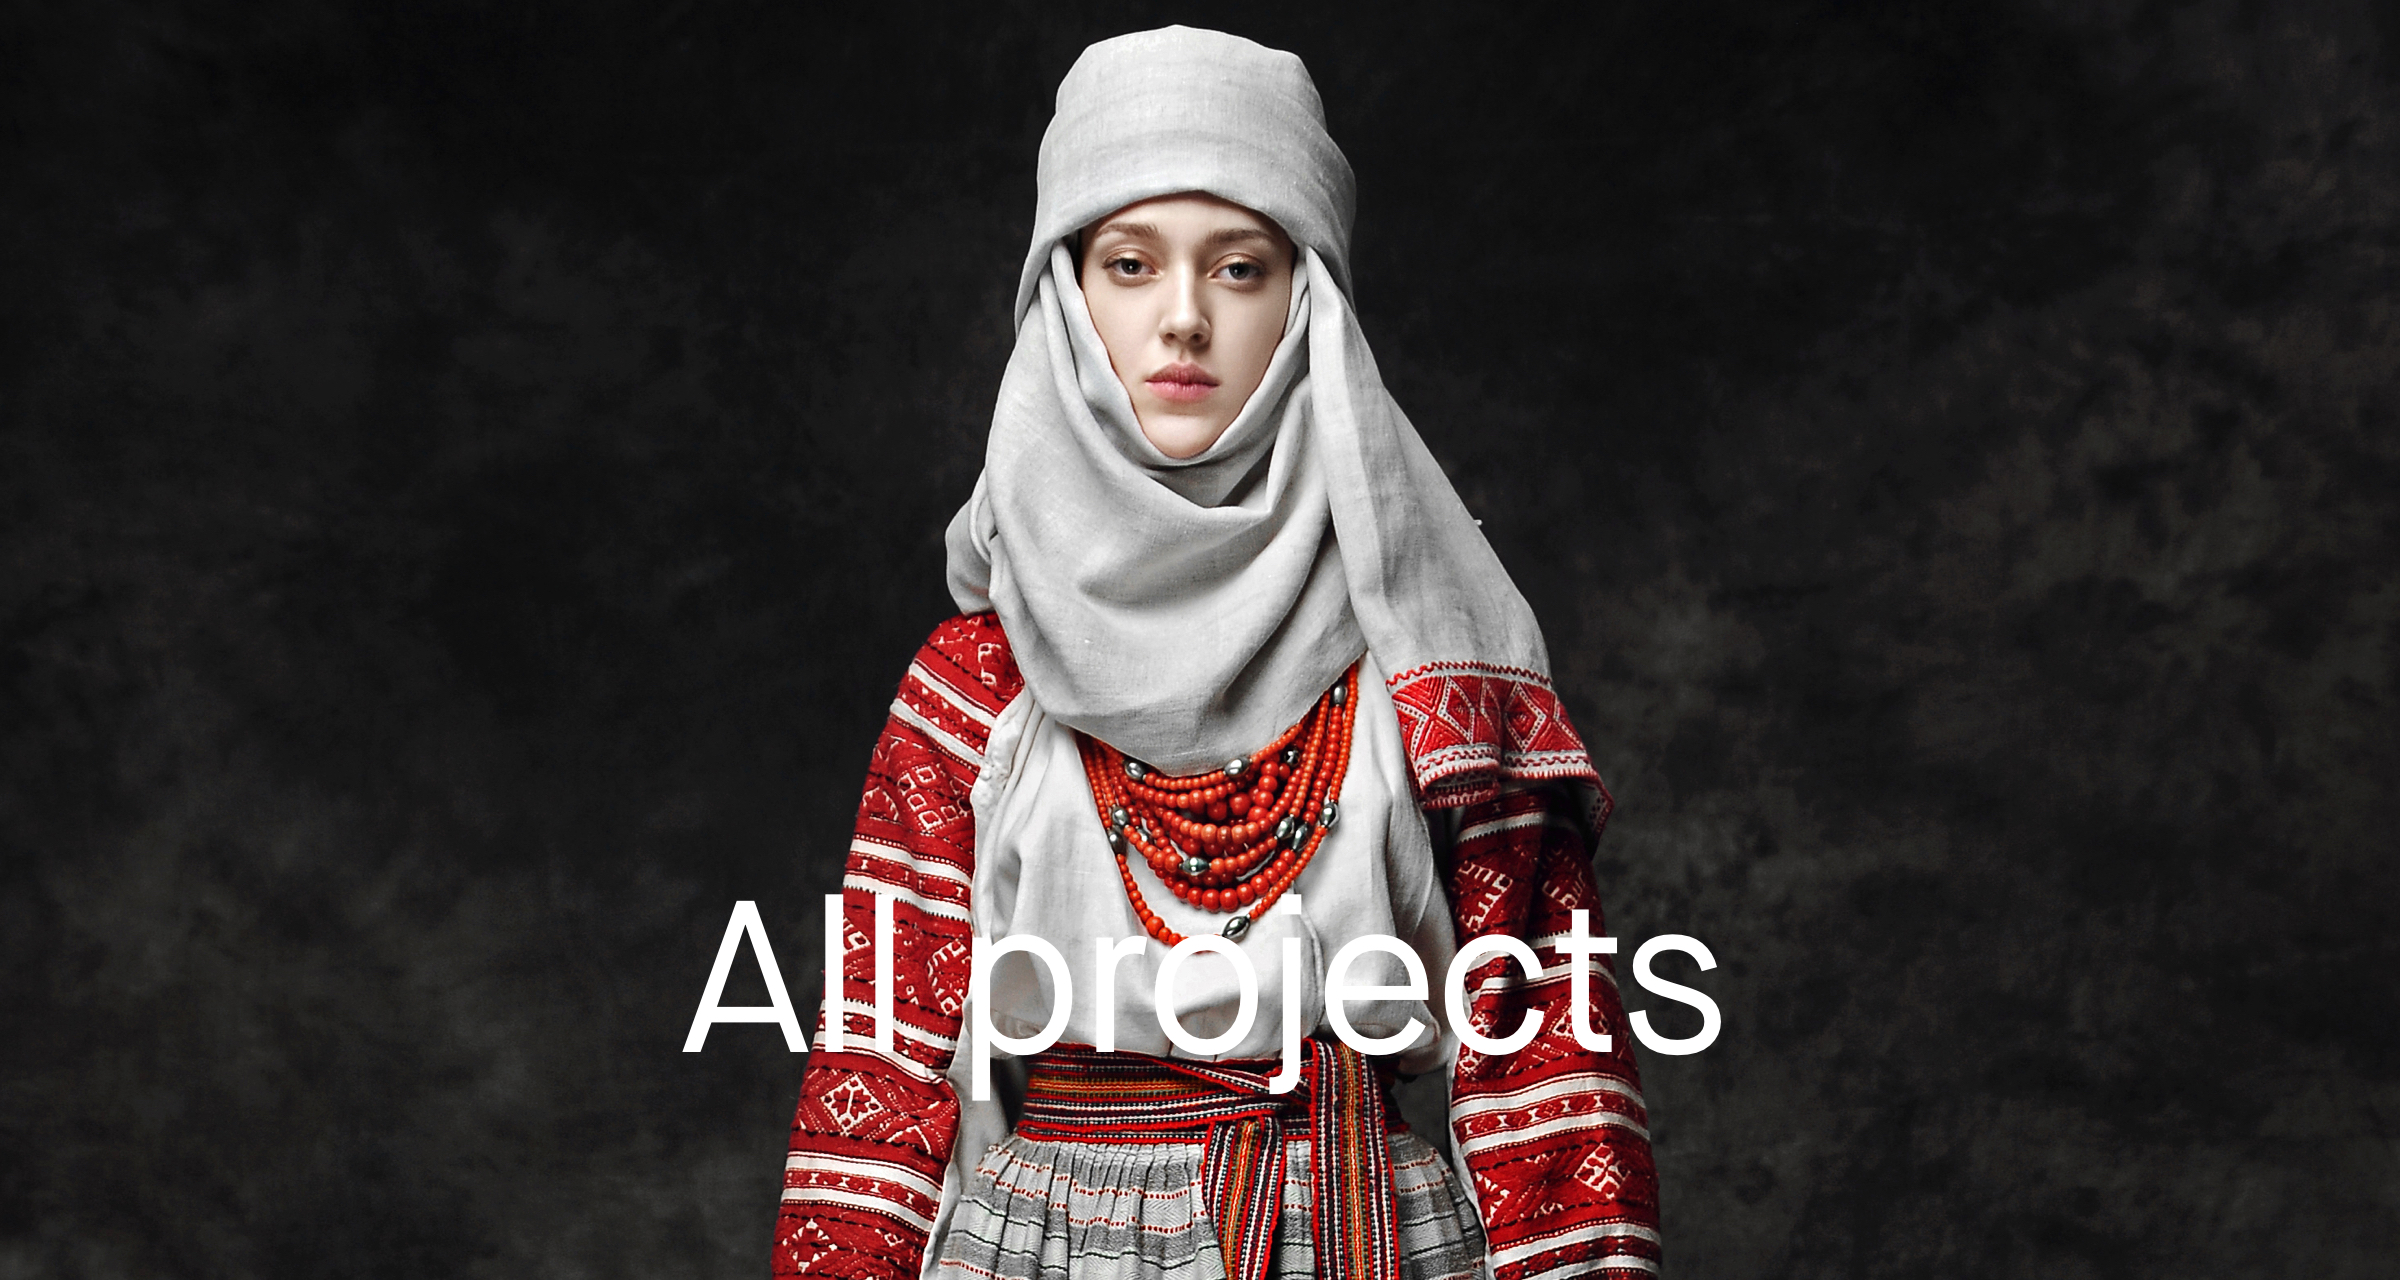 image_allprojects@2x